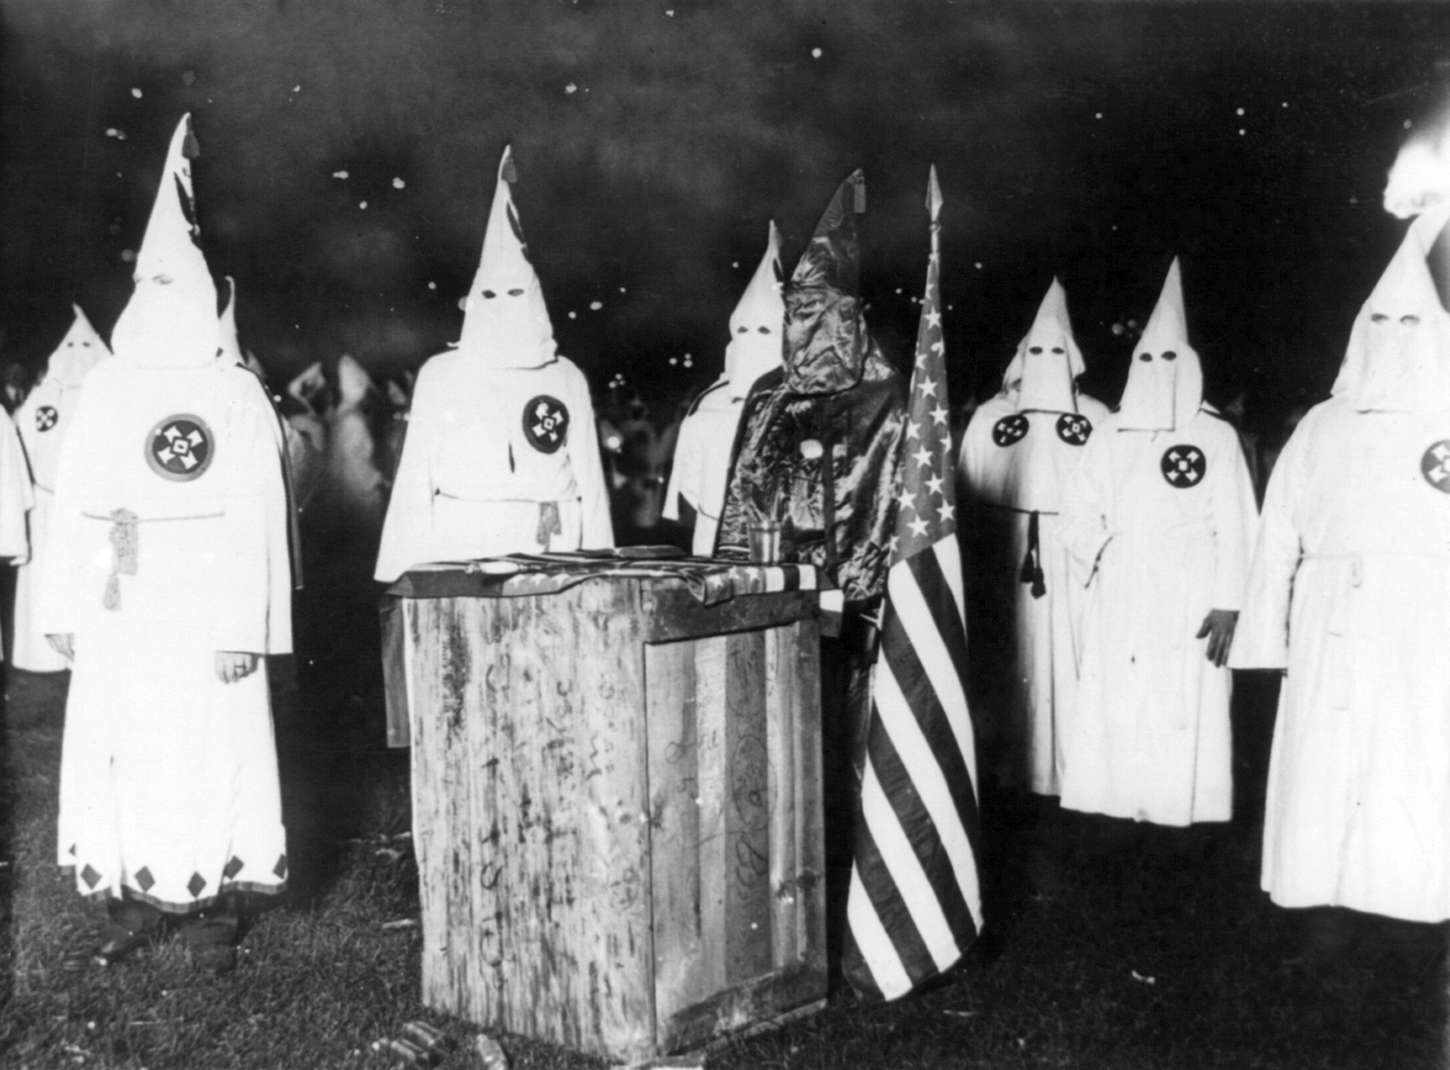 KKK night rally in Chicago, c. 1920